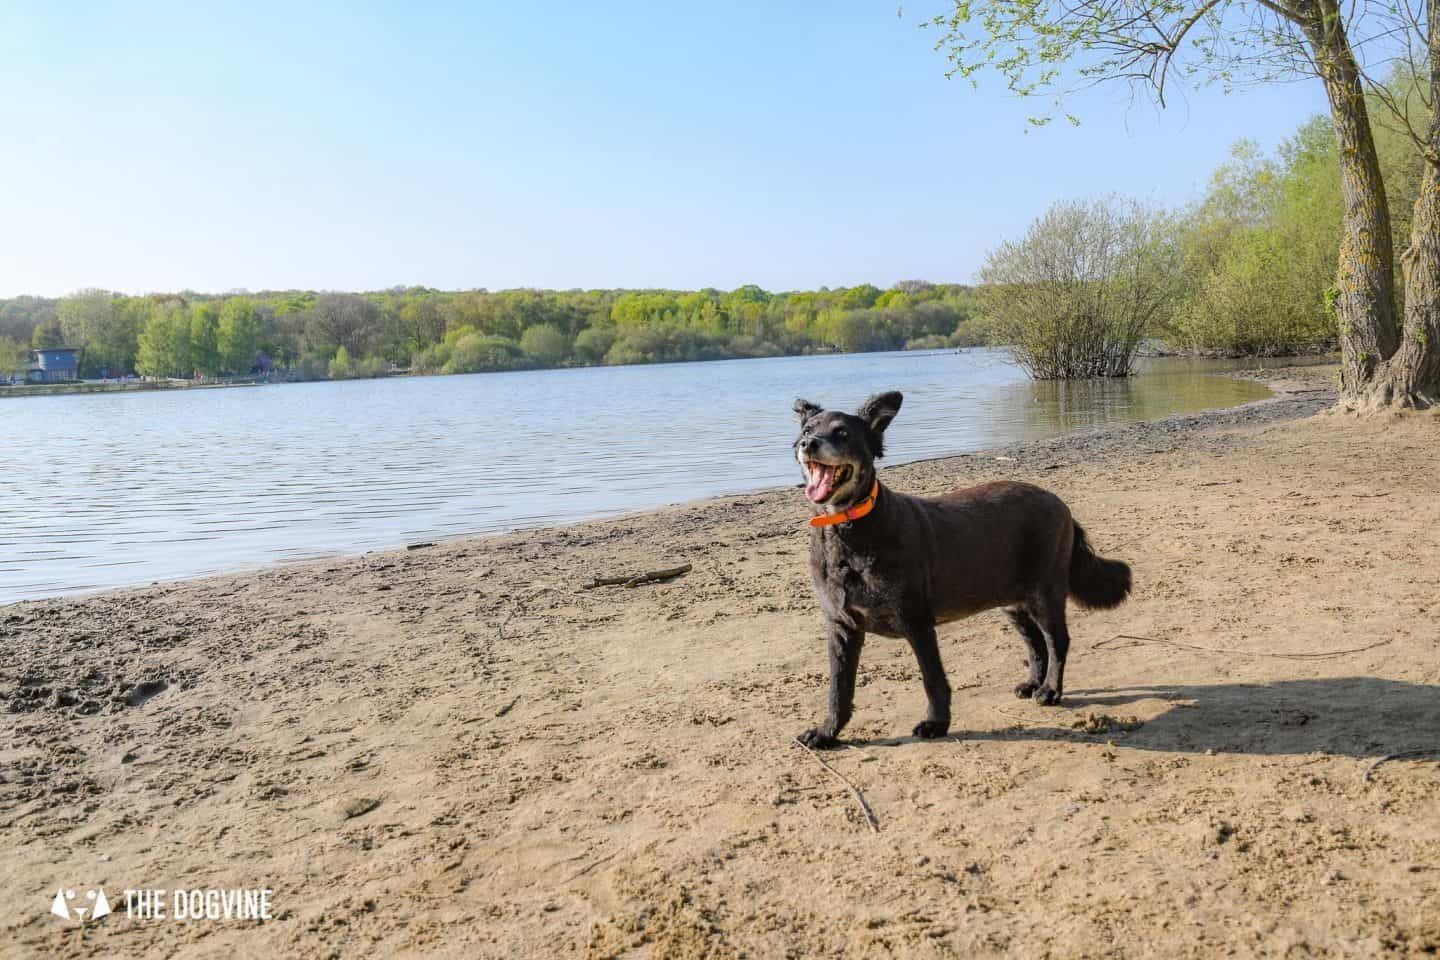 Dog-friendly London The Best Free Dog-friendly Things To Do - Ruislip Dog Beach